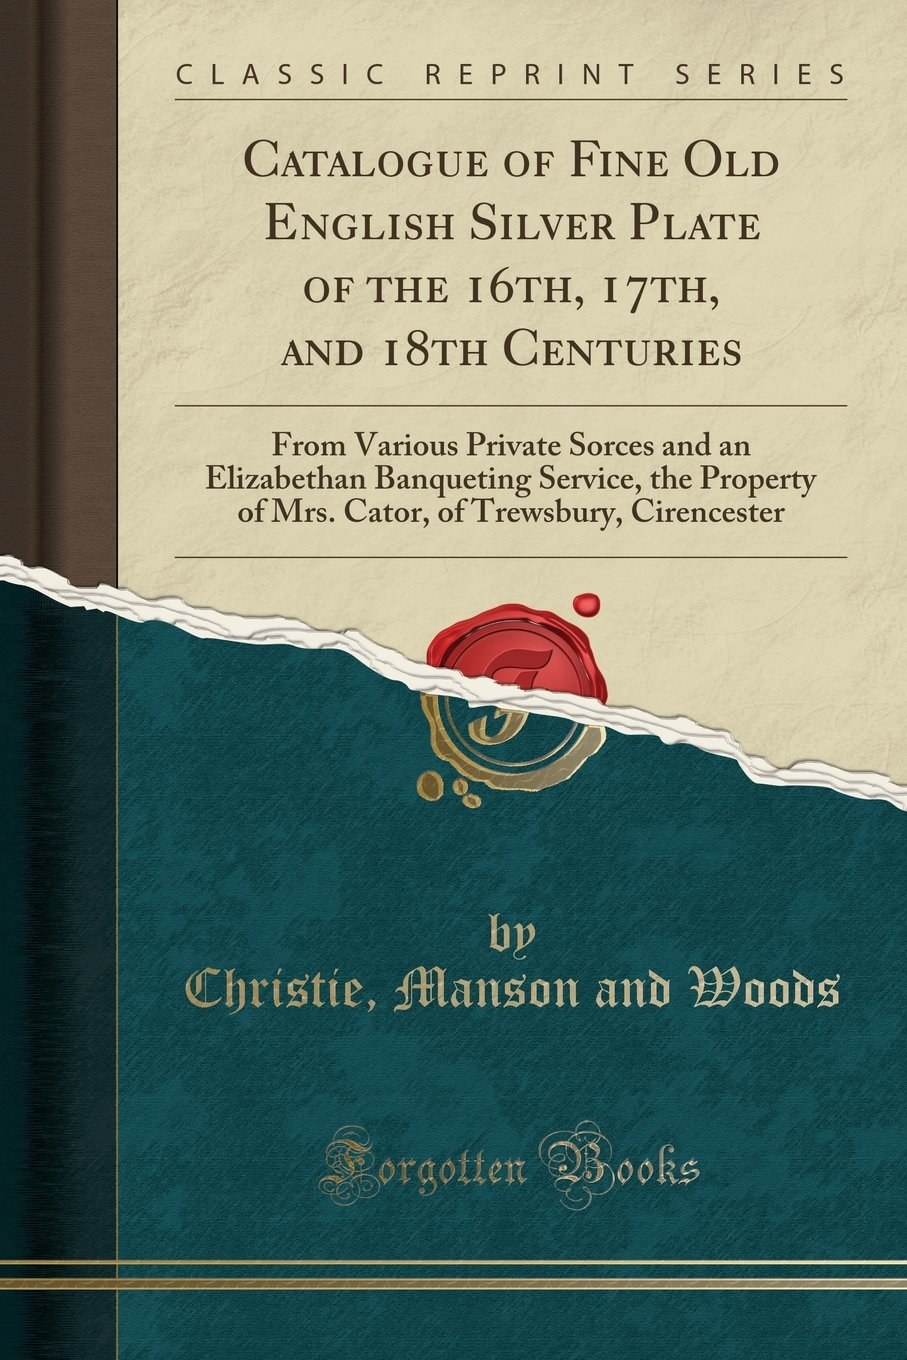 Download Catalogue of Fine Old English Silver Plate of the 16th, 17th, and 18th Centuries: From Various Private Sorces and an Elizabethan Banqueting Service, ... of Trewsbury, Cirencester (Classic Reprint) PDF